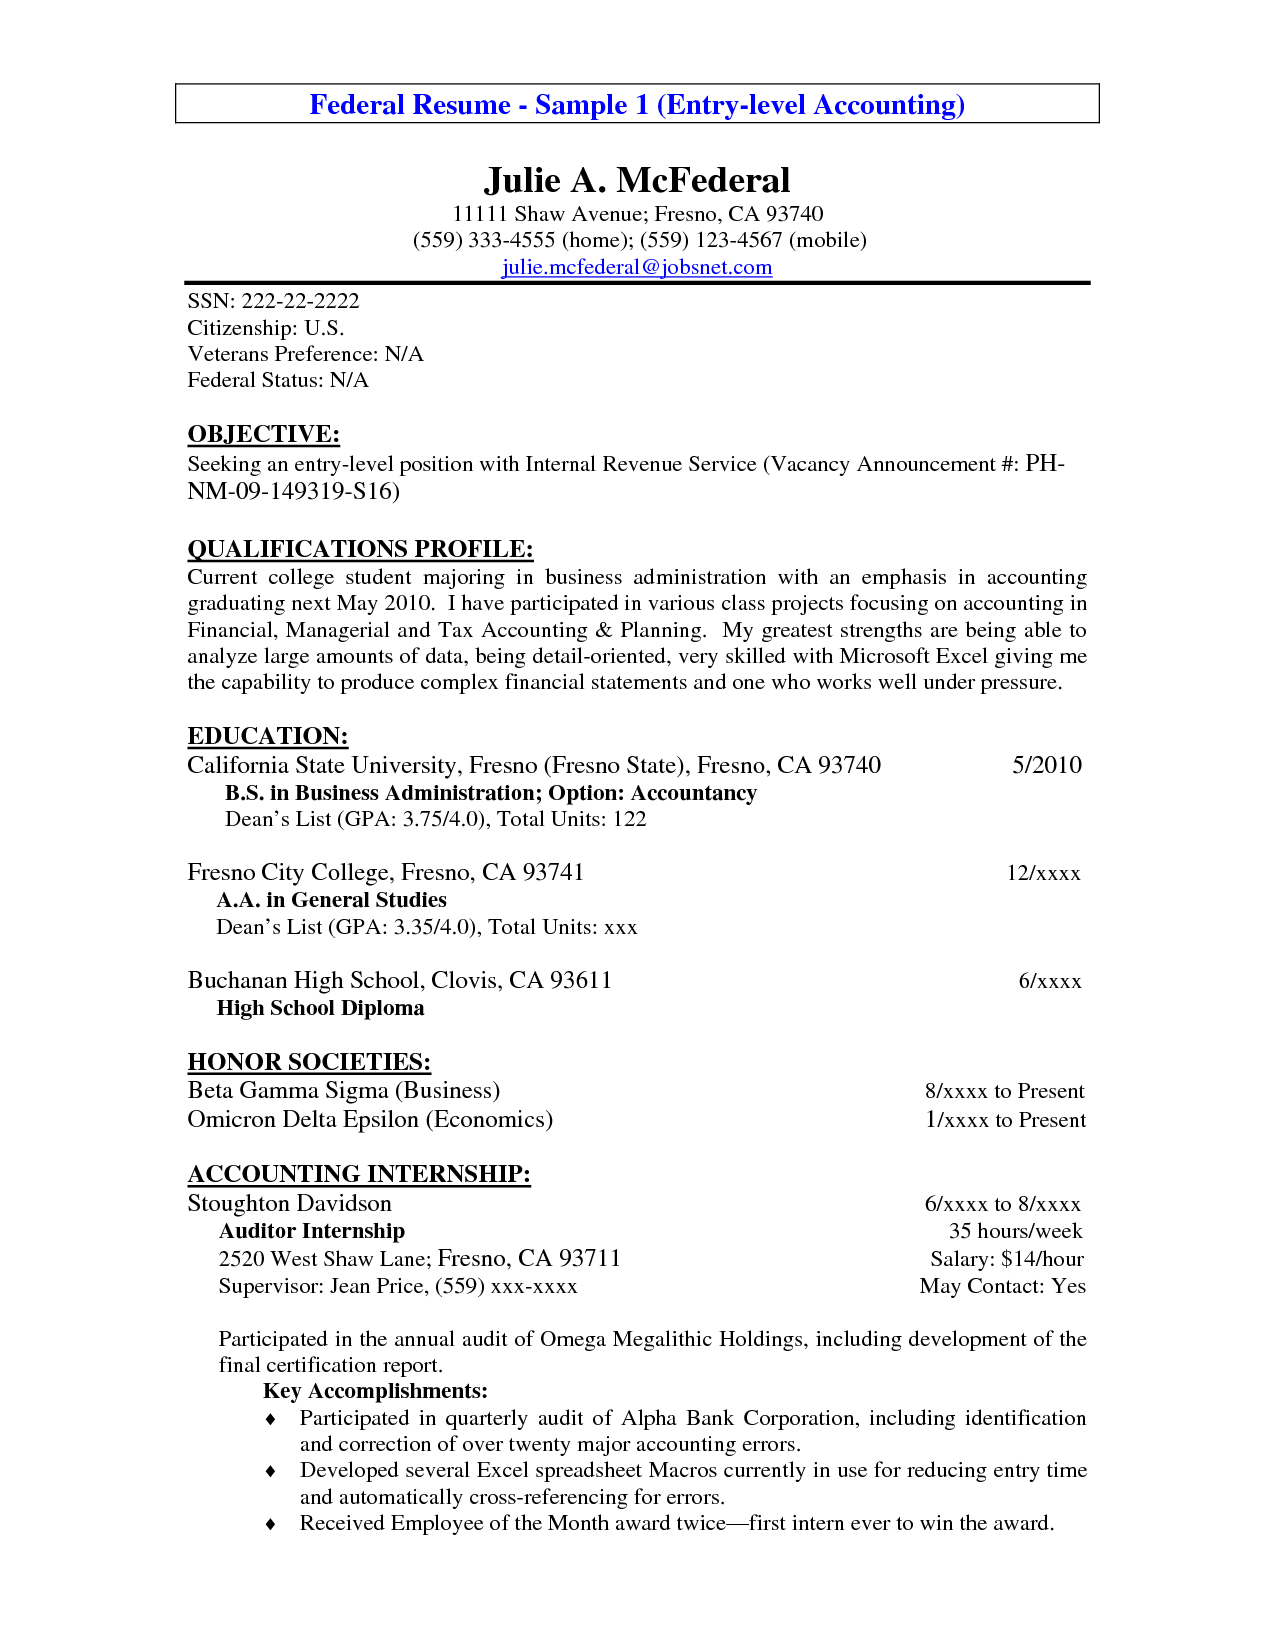 Pin by Resume Objectives on Accounting Resume Objectives | Pinterest ...